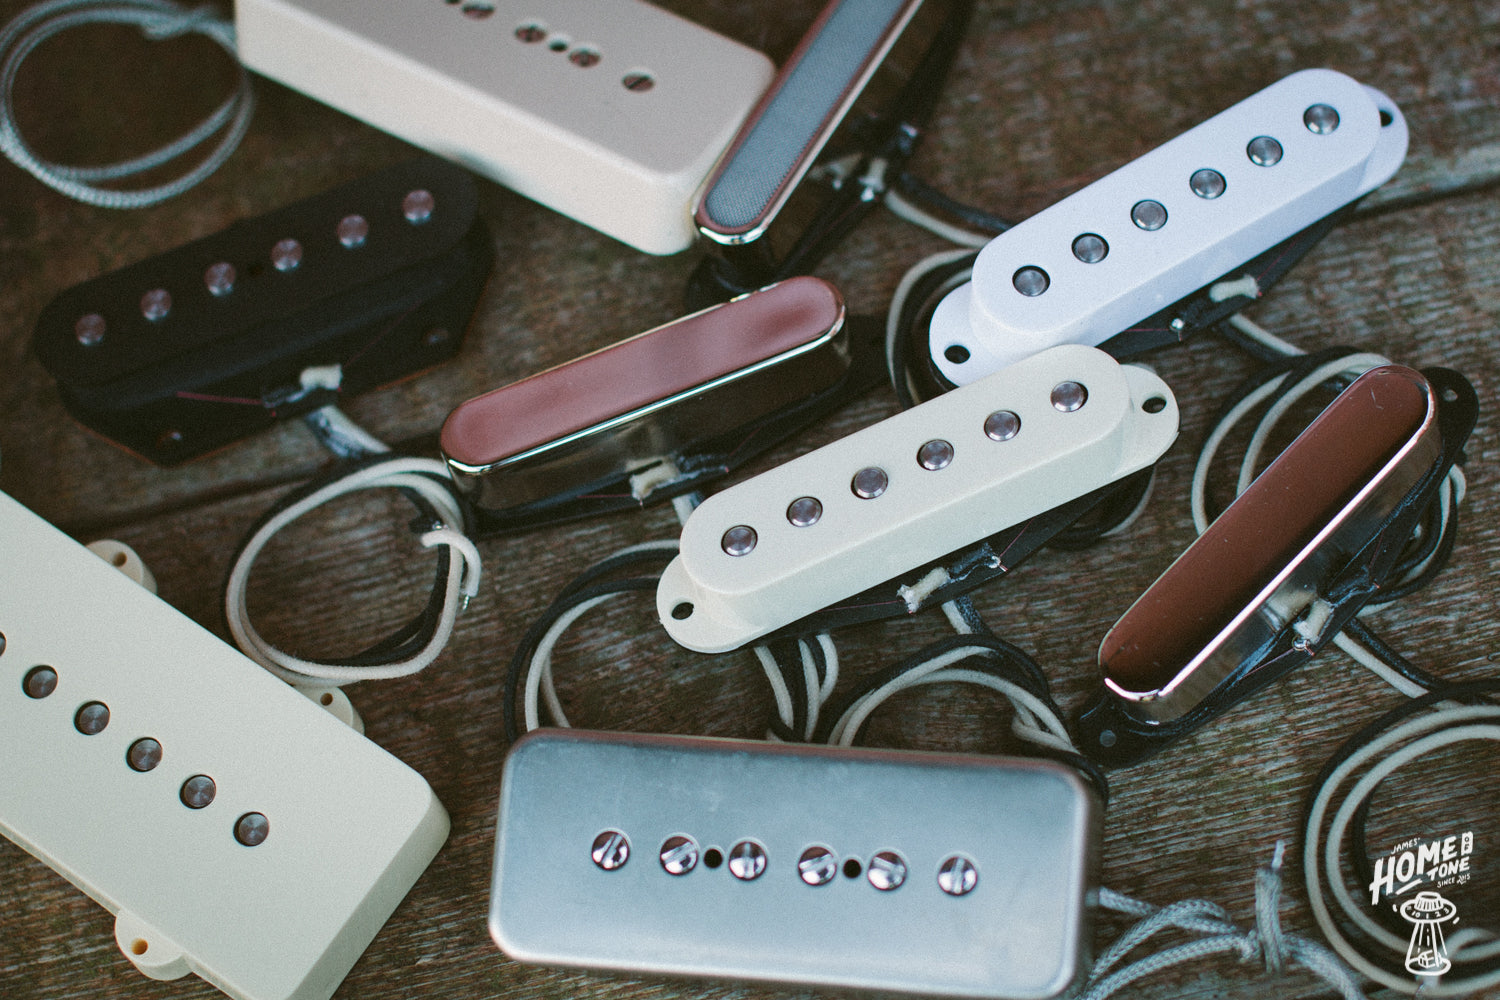 Thinking of swapping your pickups? - A handy guide for new tone